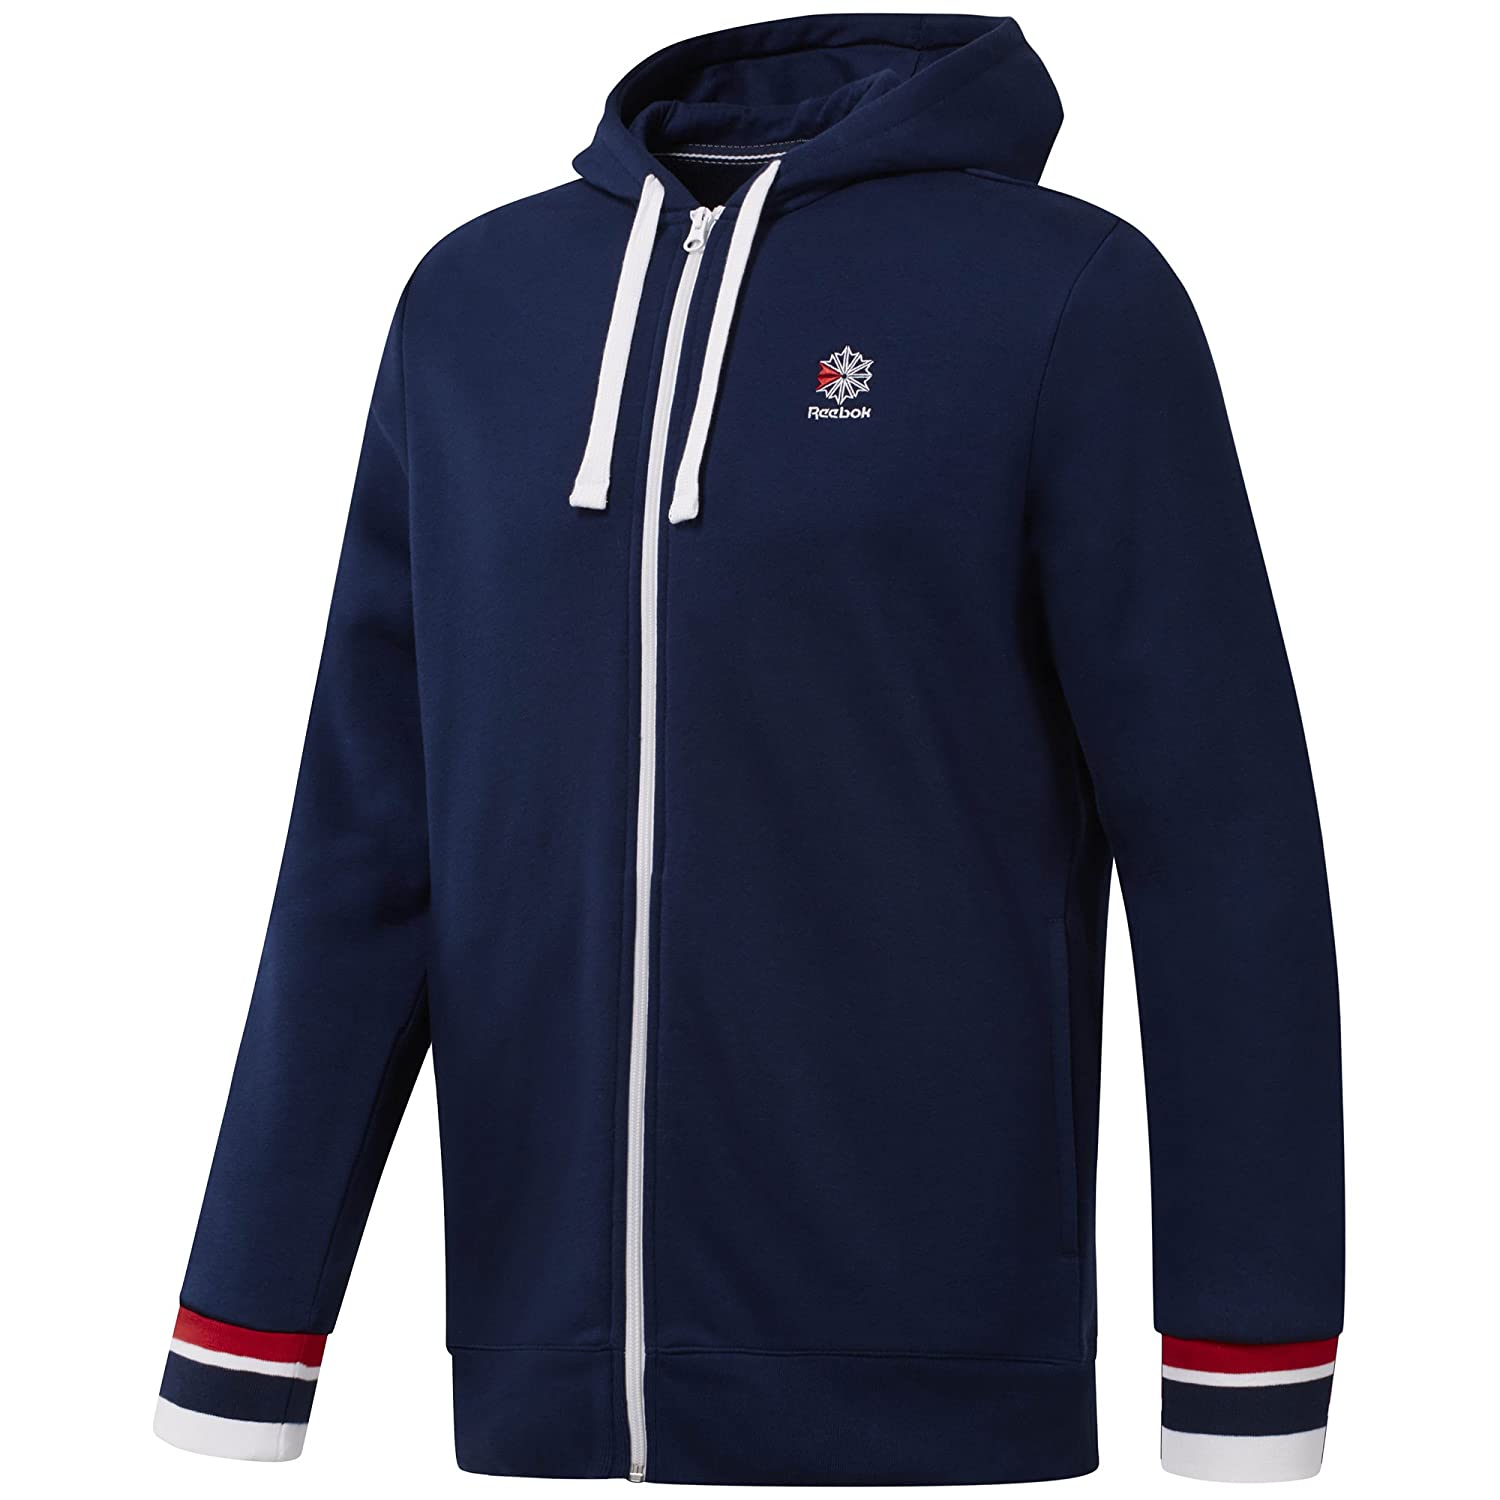 Reebok Men's Fleece Full Zip Hoodie Sweater, Collegiate Navy, S/P DH2109